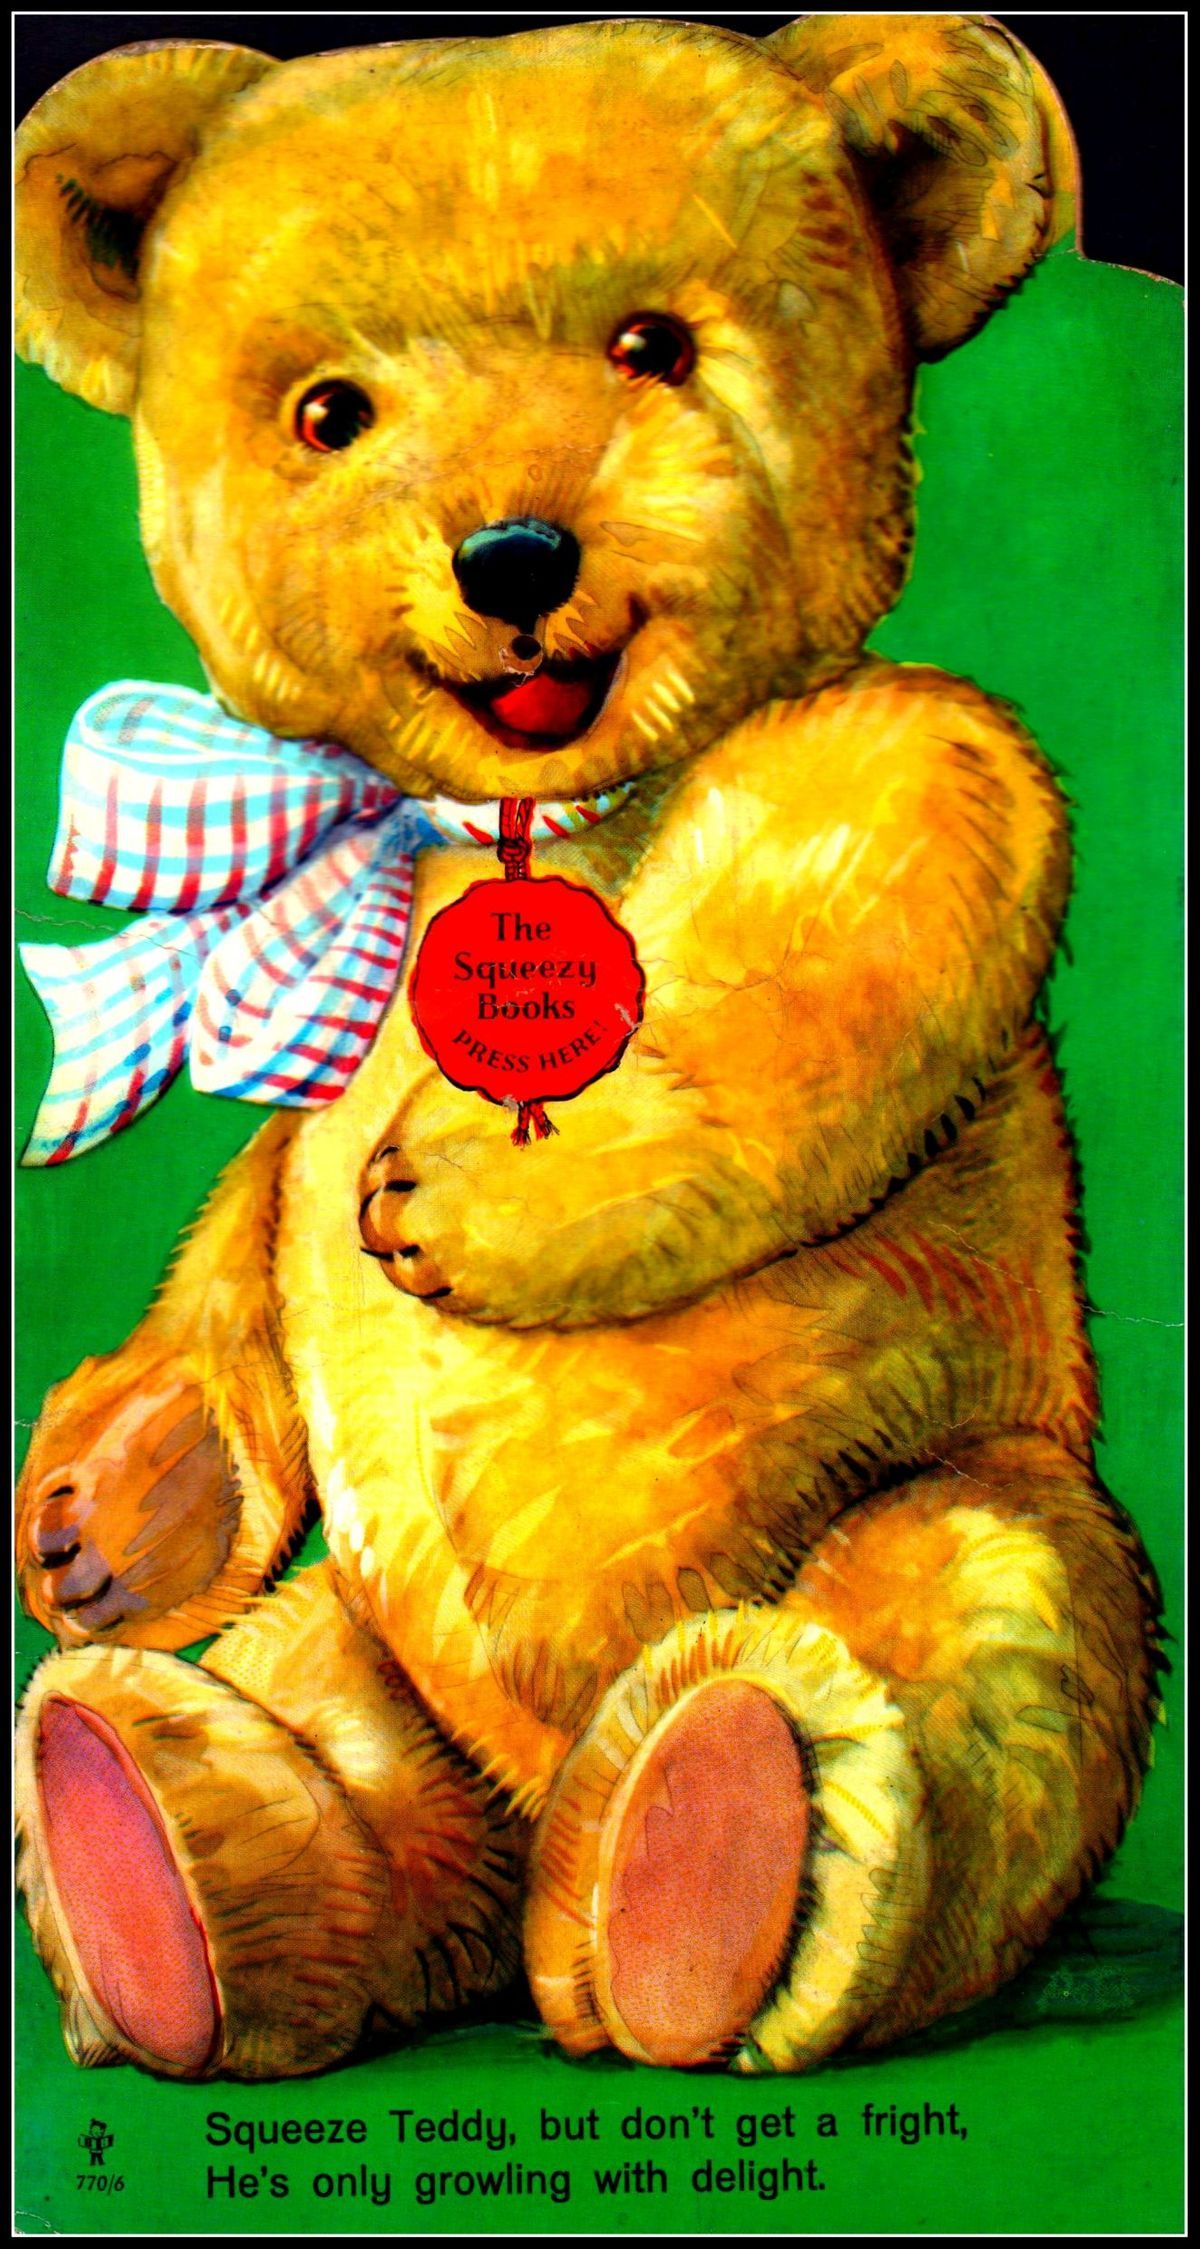 The Squeeze Books - Teddy - BB 770-6